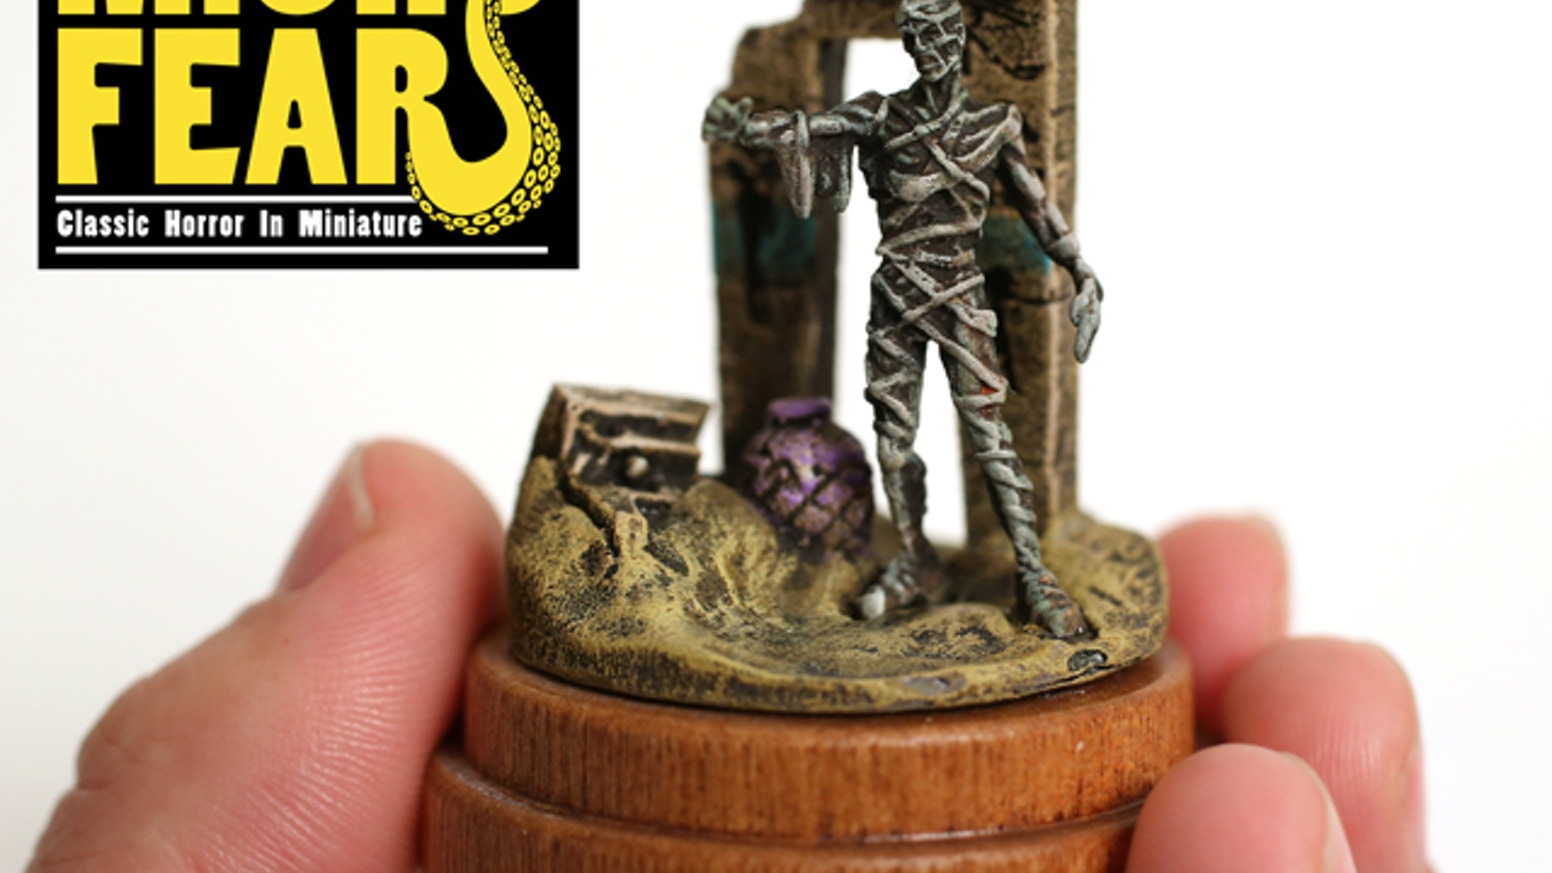 Tiny, highly detailed horror scenes, 3D printed in wax, and cast in beautiful bronze and other fine materials.